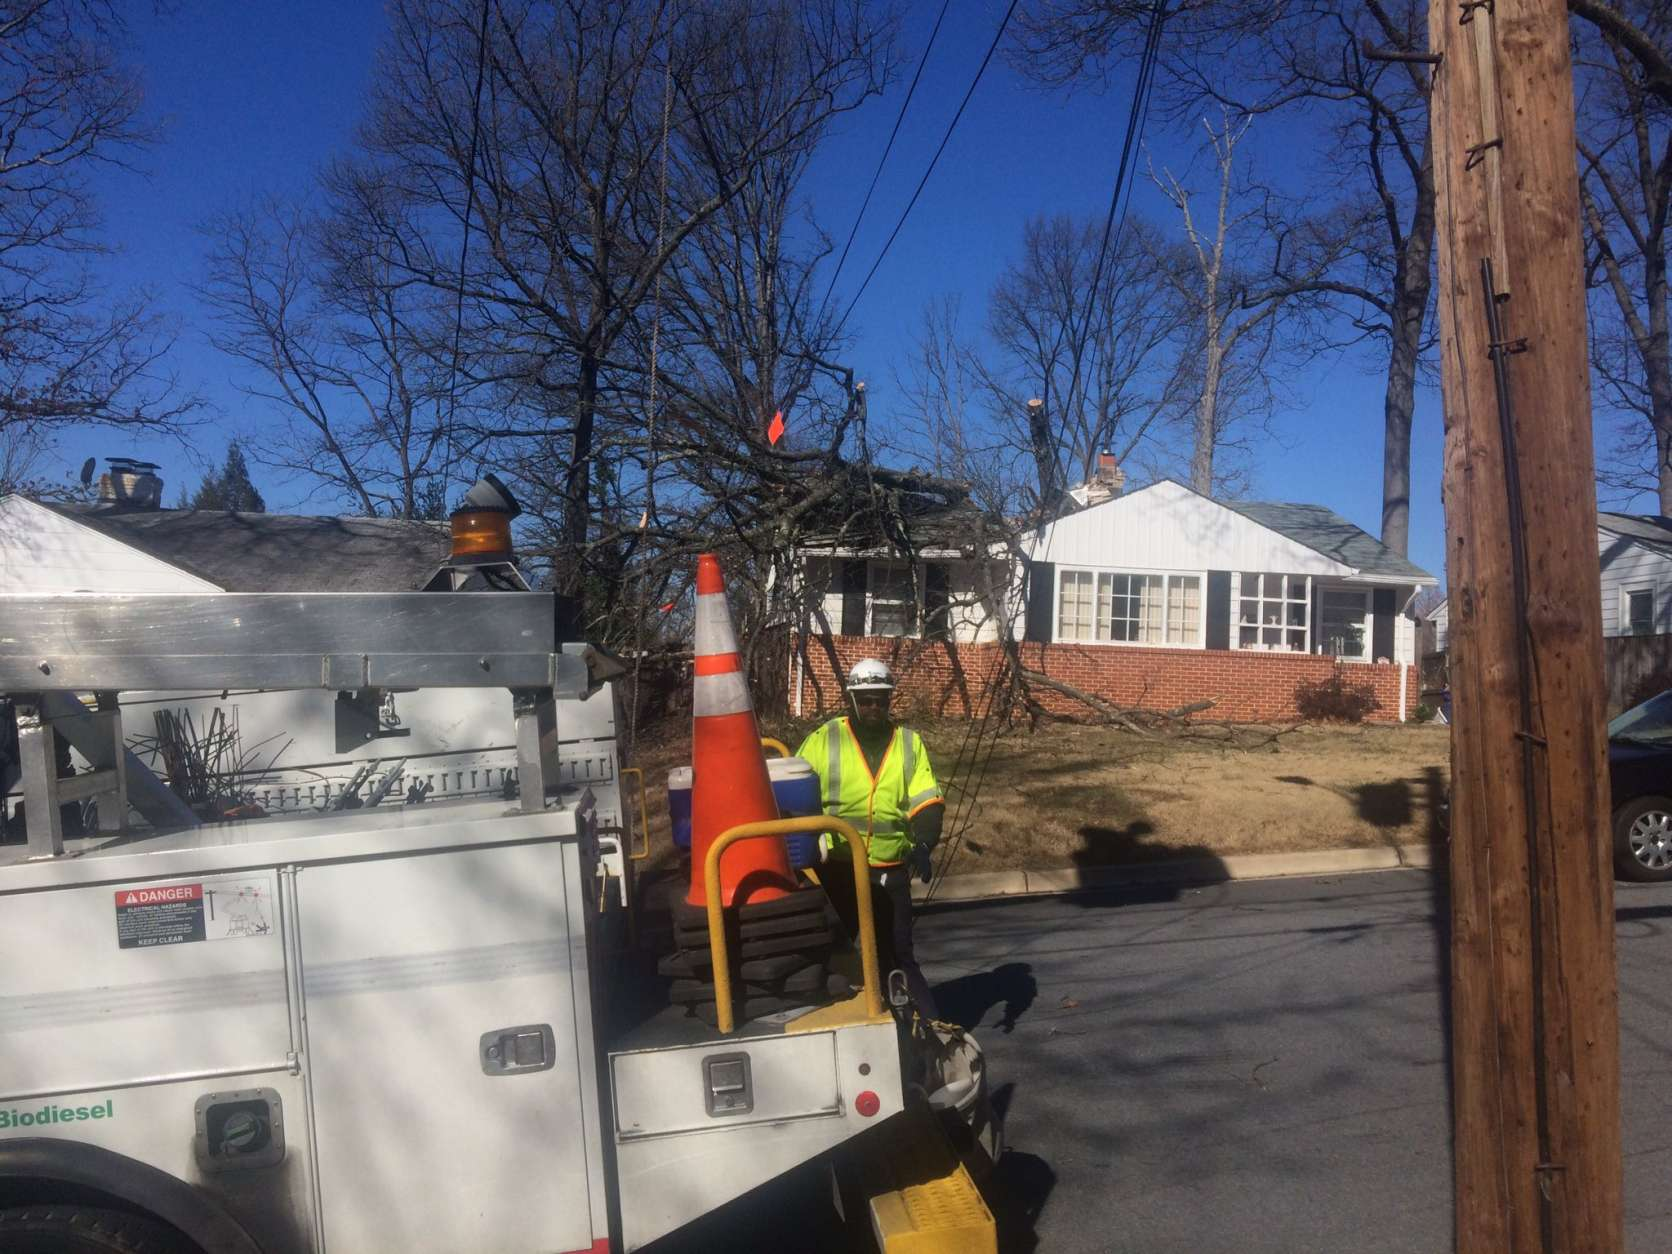 A home on Burnett Avenue in Silver Spring was evacuated after a large tree fell on a house, Wires were down and the road was closed between Lanark Way and Stirling Road. (Courtesy Pete Piringer)